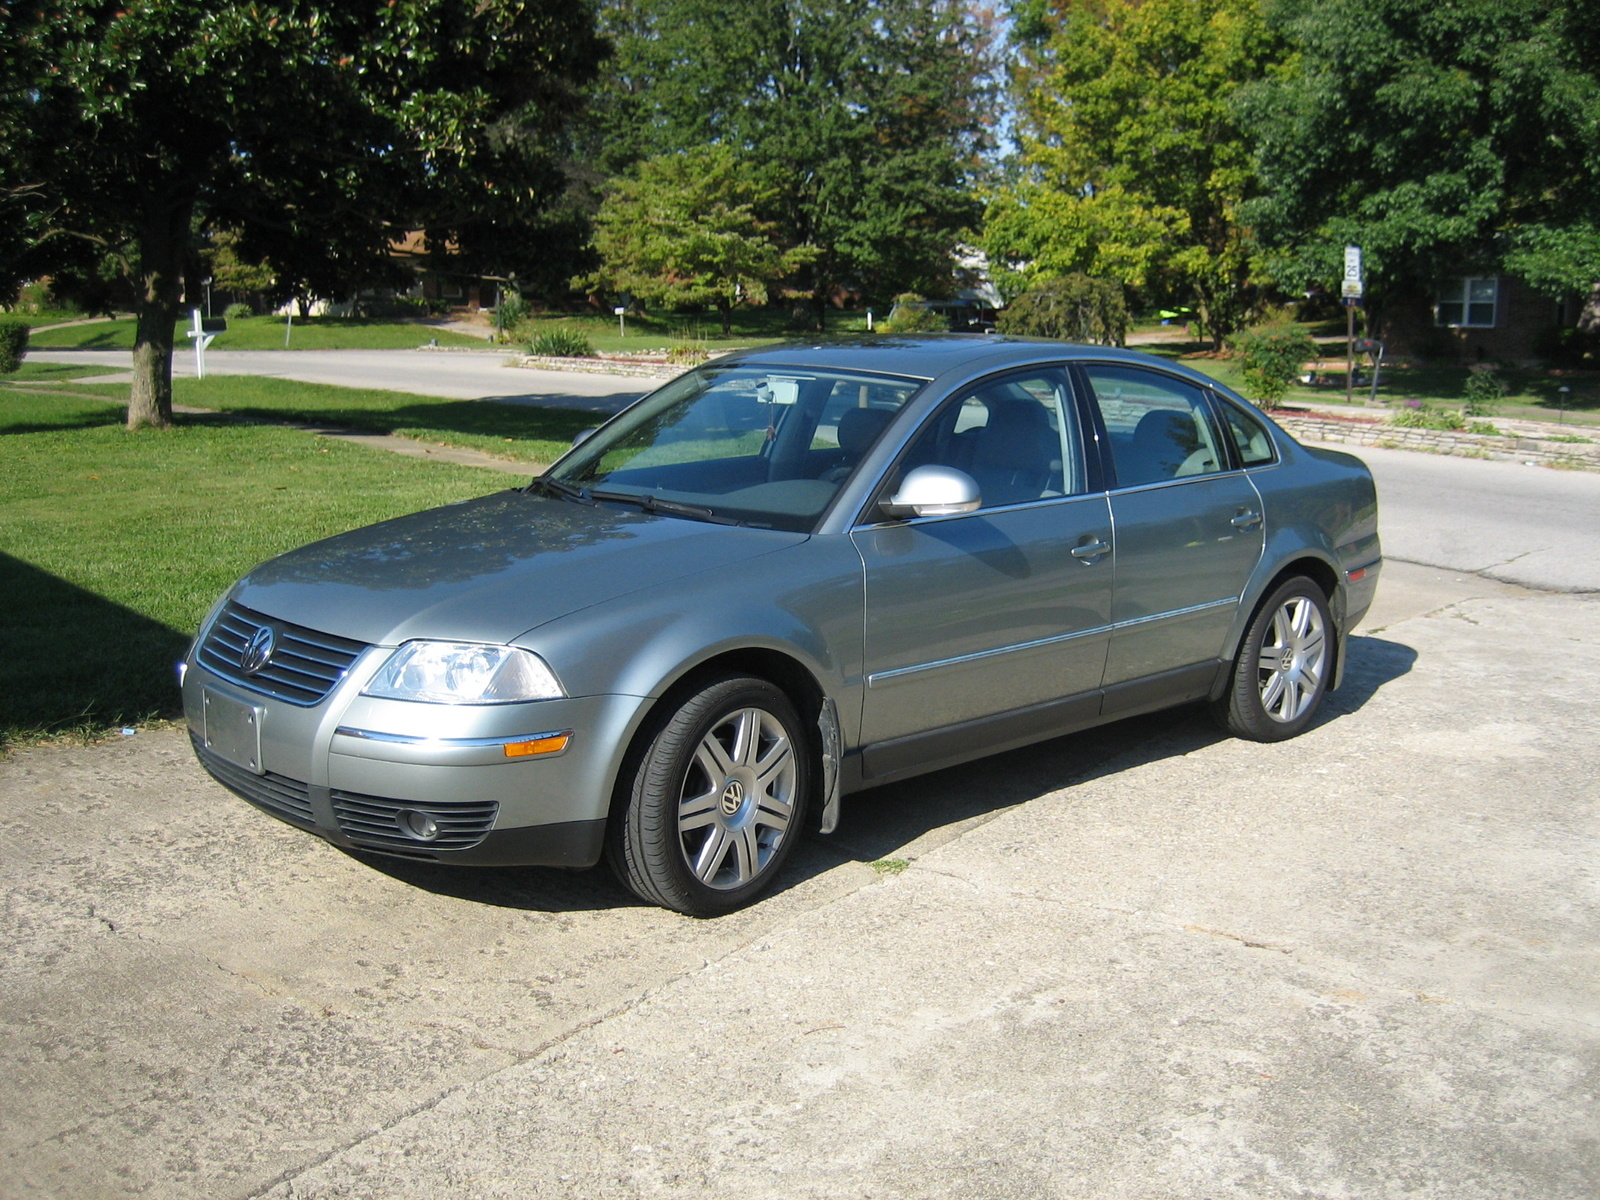 Picture of 2005 Volkswagen Passat GLS